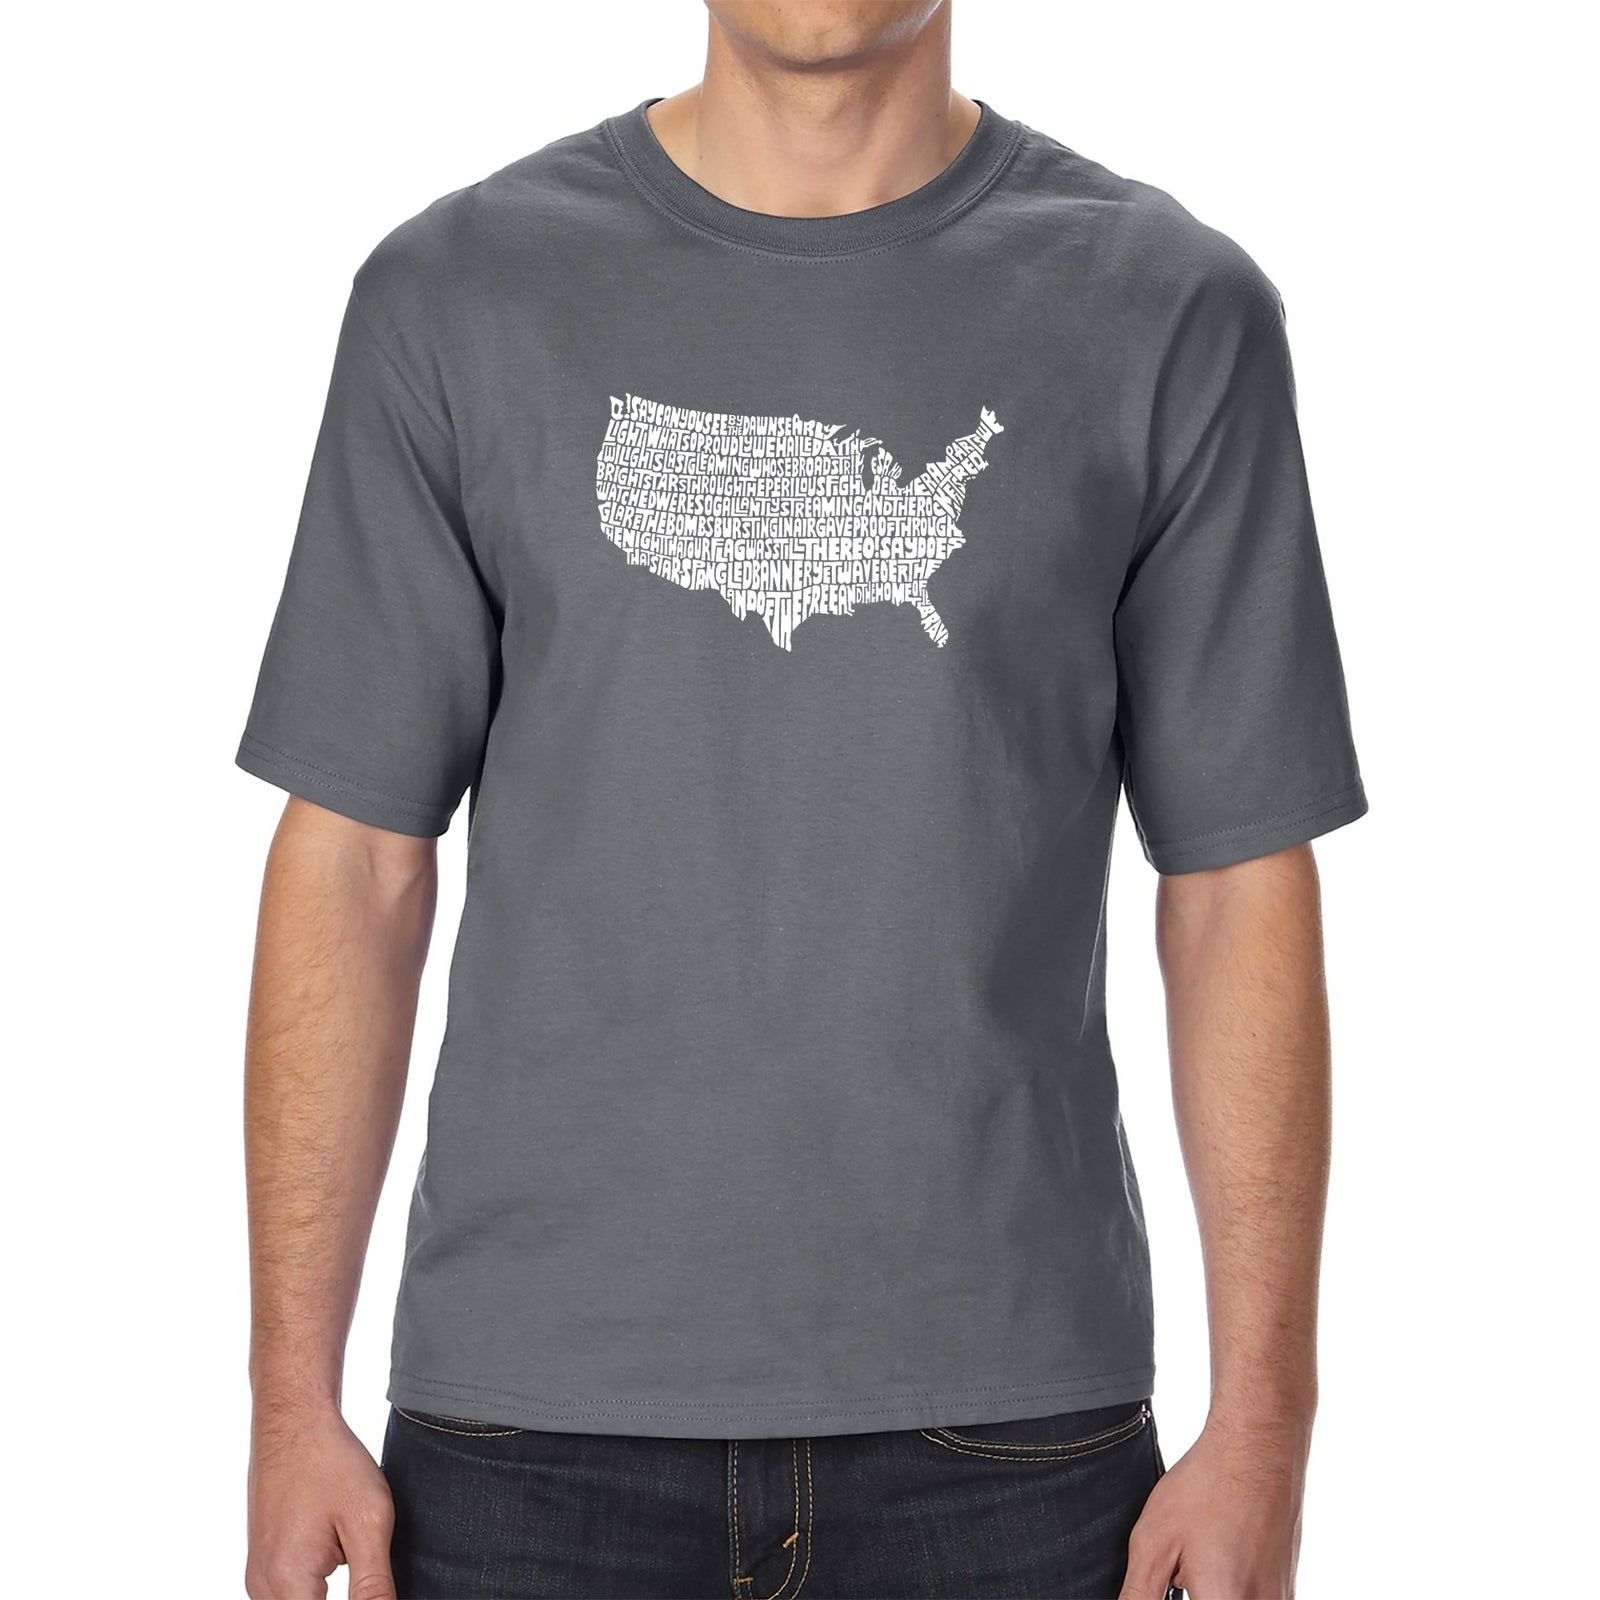 Men's Tall and Long Word Art T-shirt - THE STAR SPANGLED BANNER